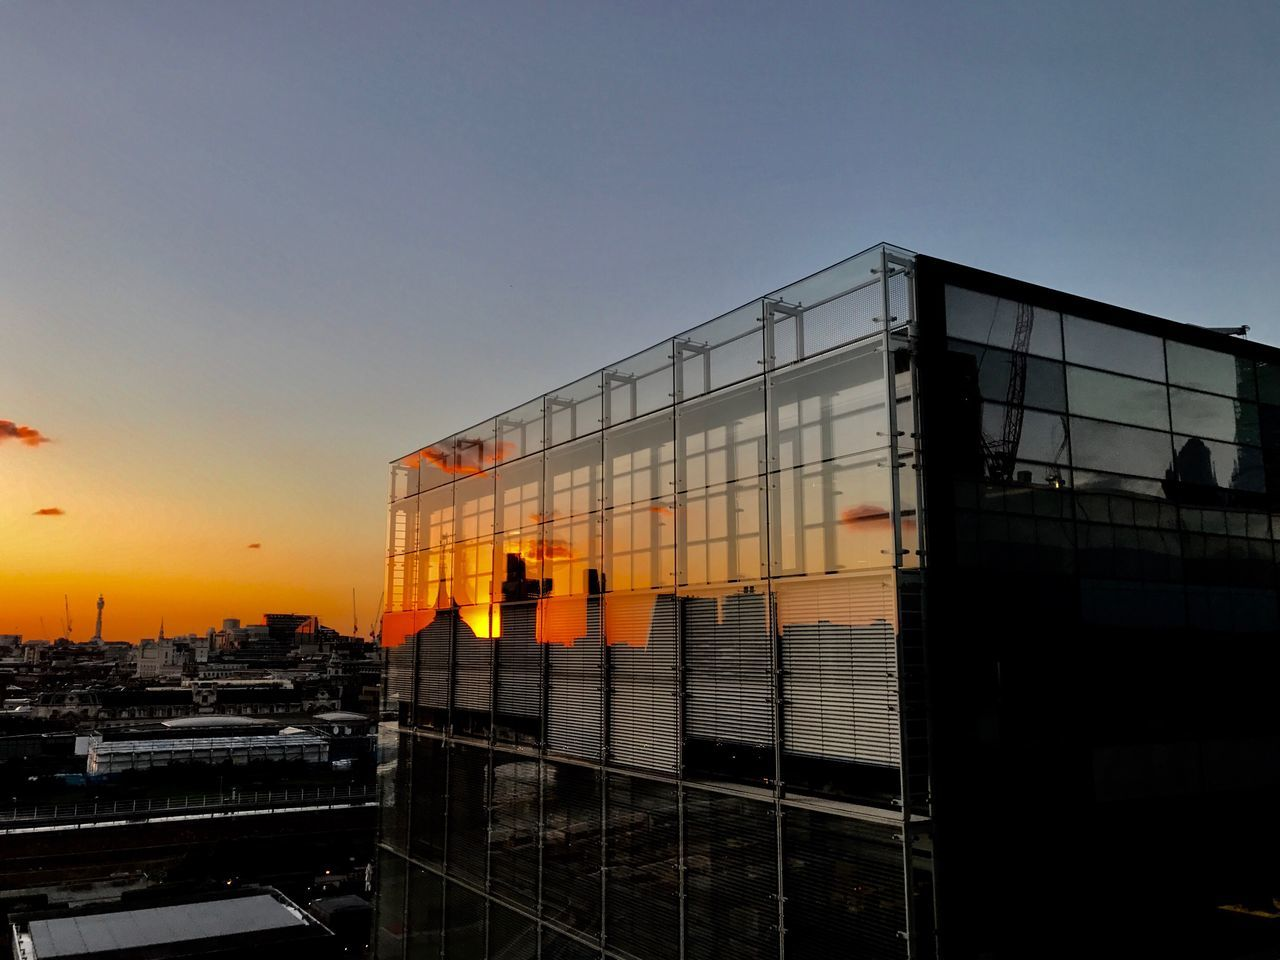 architecture, sunset, built structure, clear sky, building exterior, no people, sky, outdoors, city, day